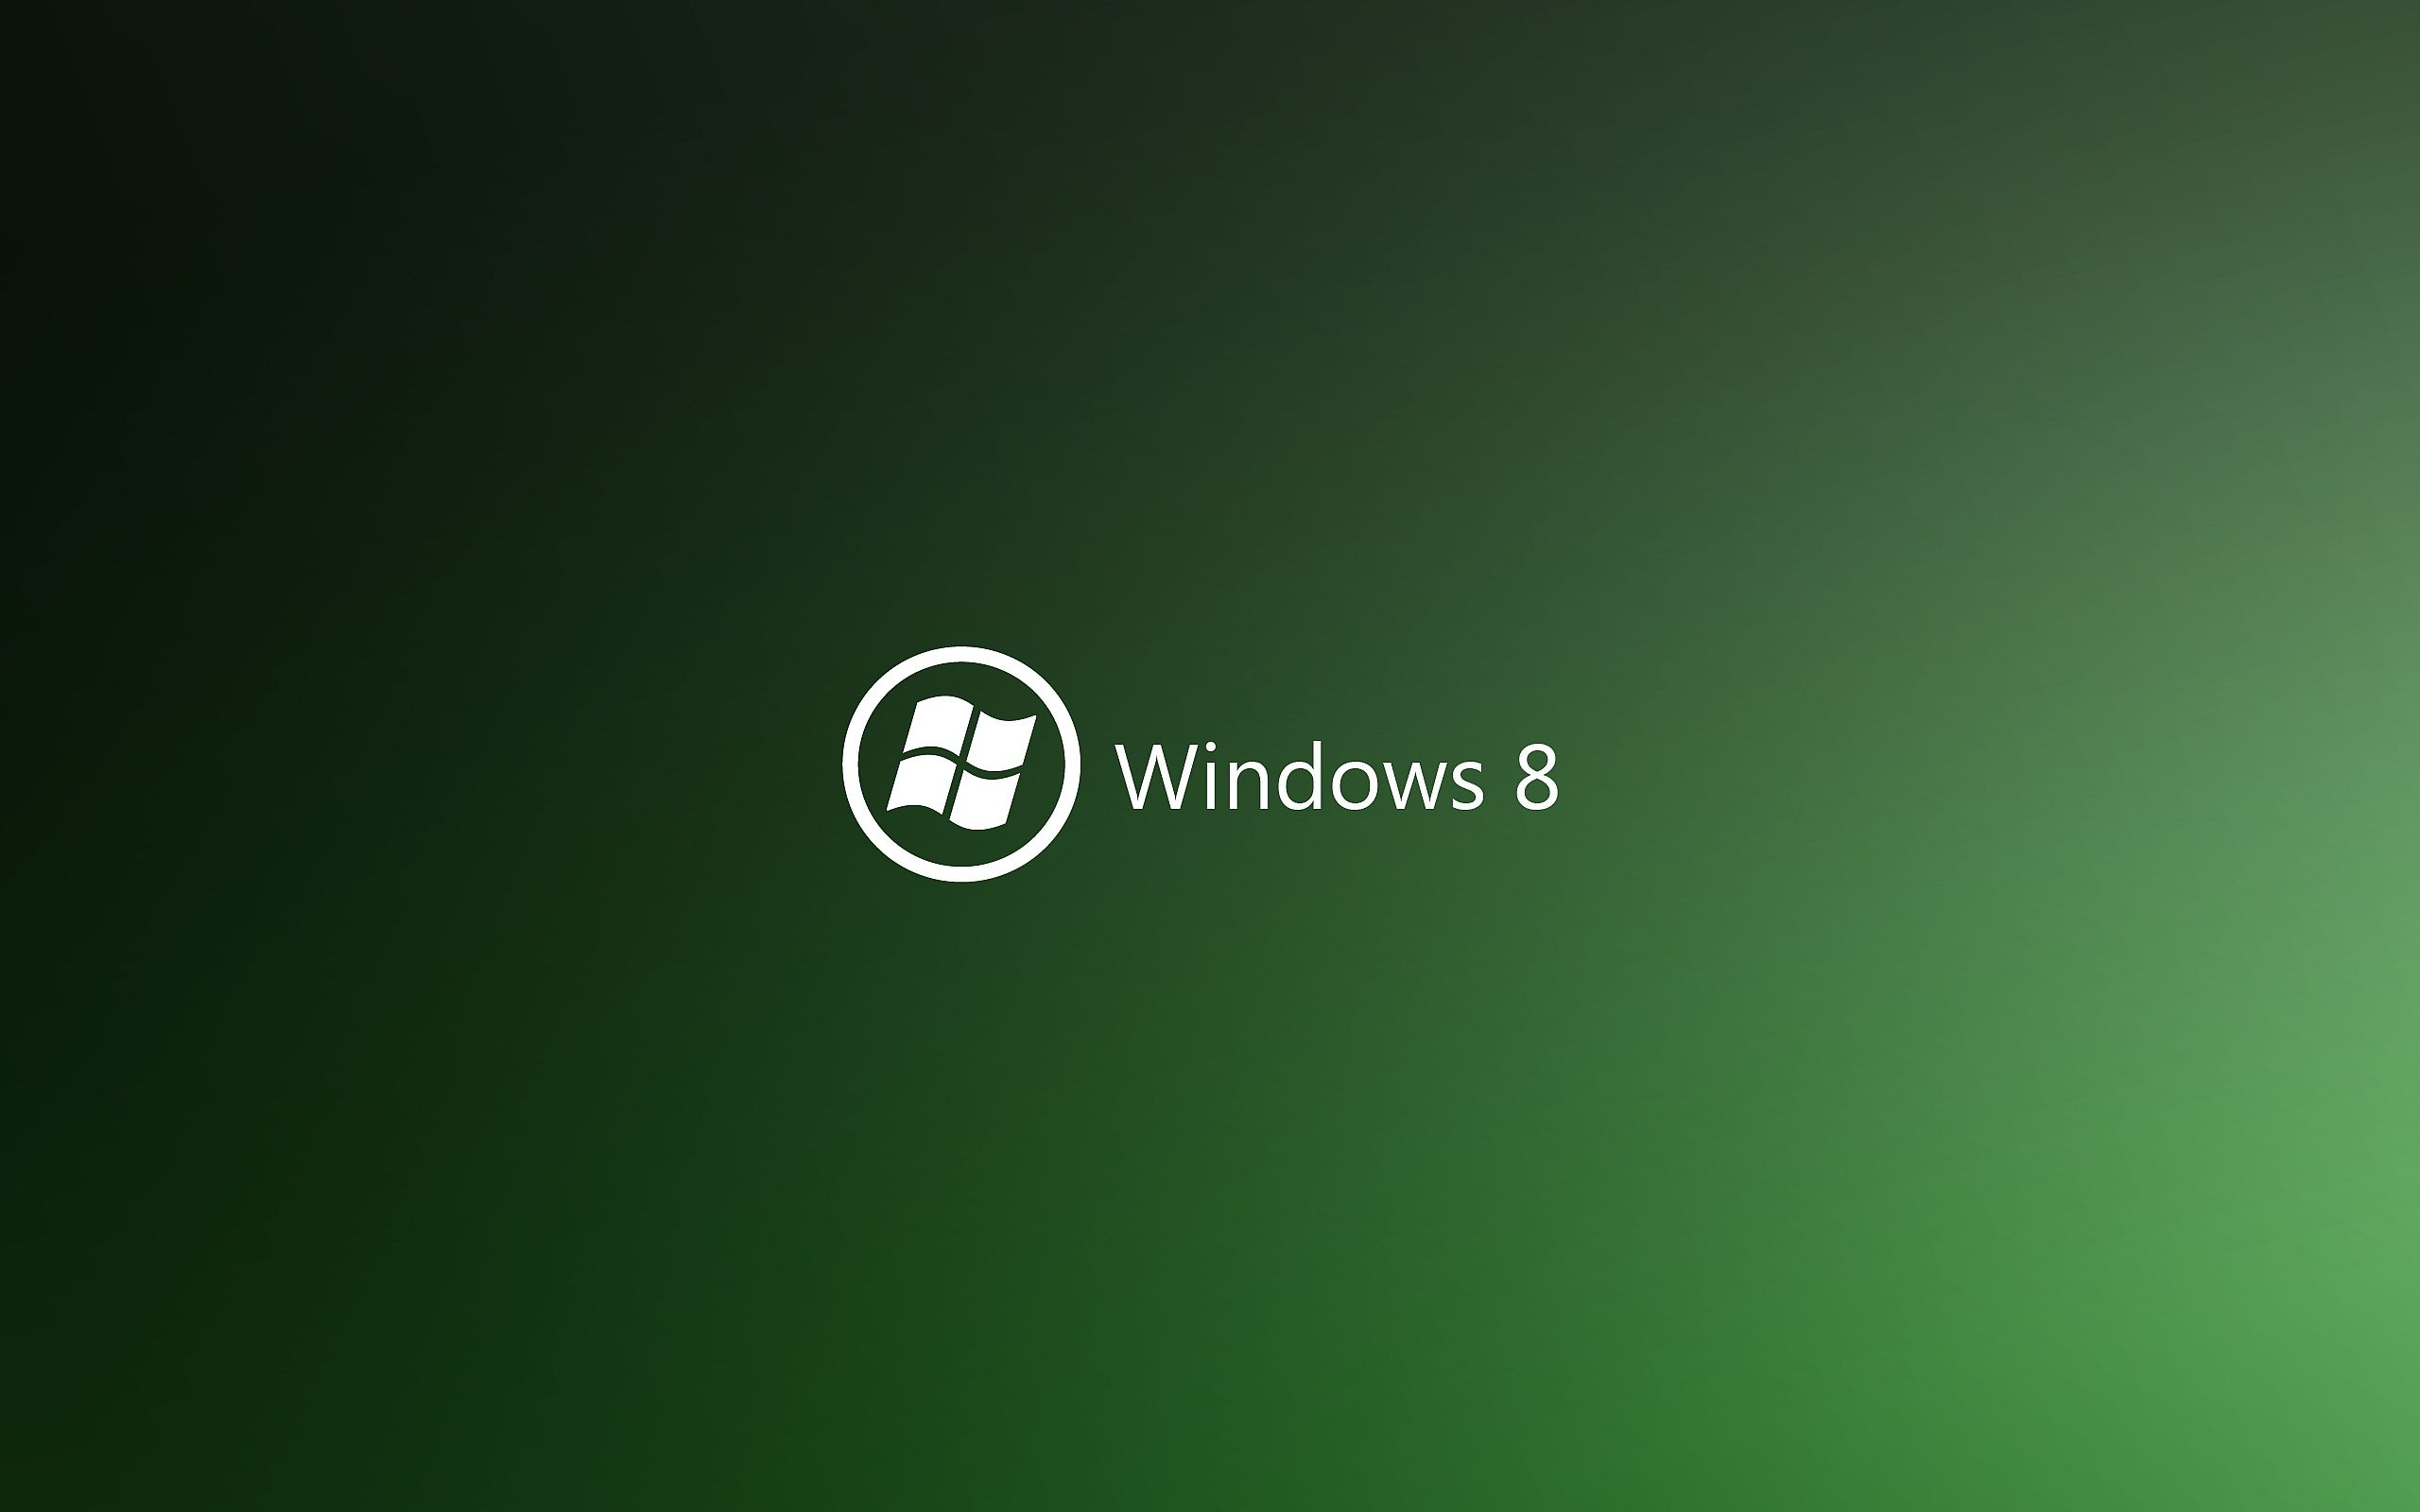 Windows 8 Green Wallpapers Pictures Windows Wallpaper Green Wallpaper Windows Windows 8 green brand logo wallpapers hd